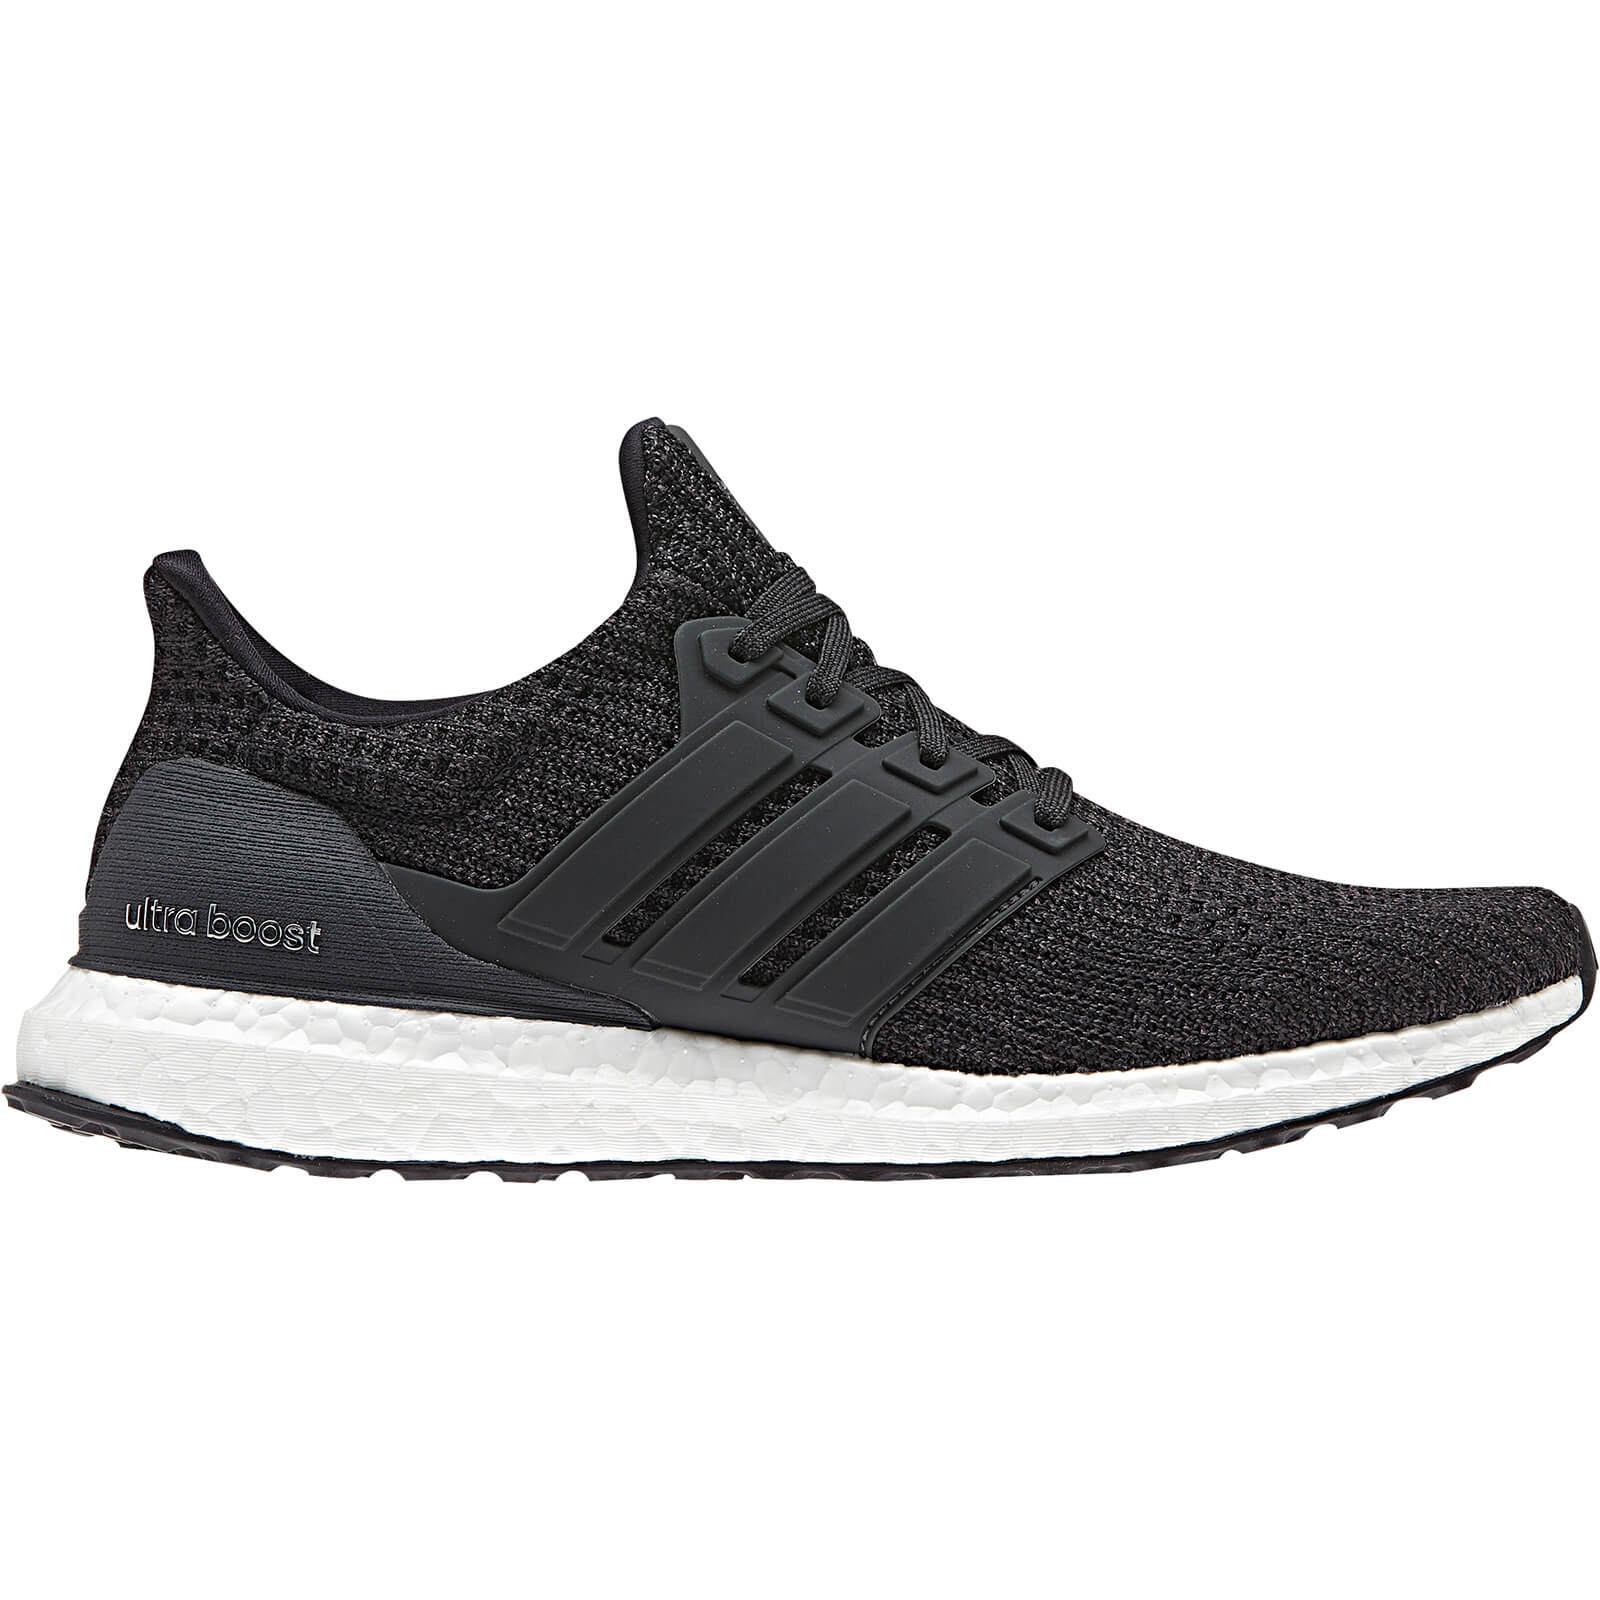 Ultraboost Shoes Ultraboost Carbon Shoes Running Adidas Carbon Running Adidas bgY7yf6